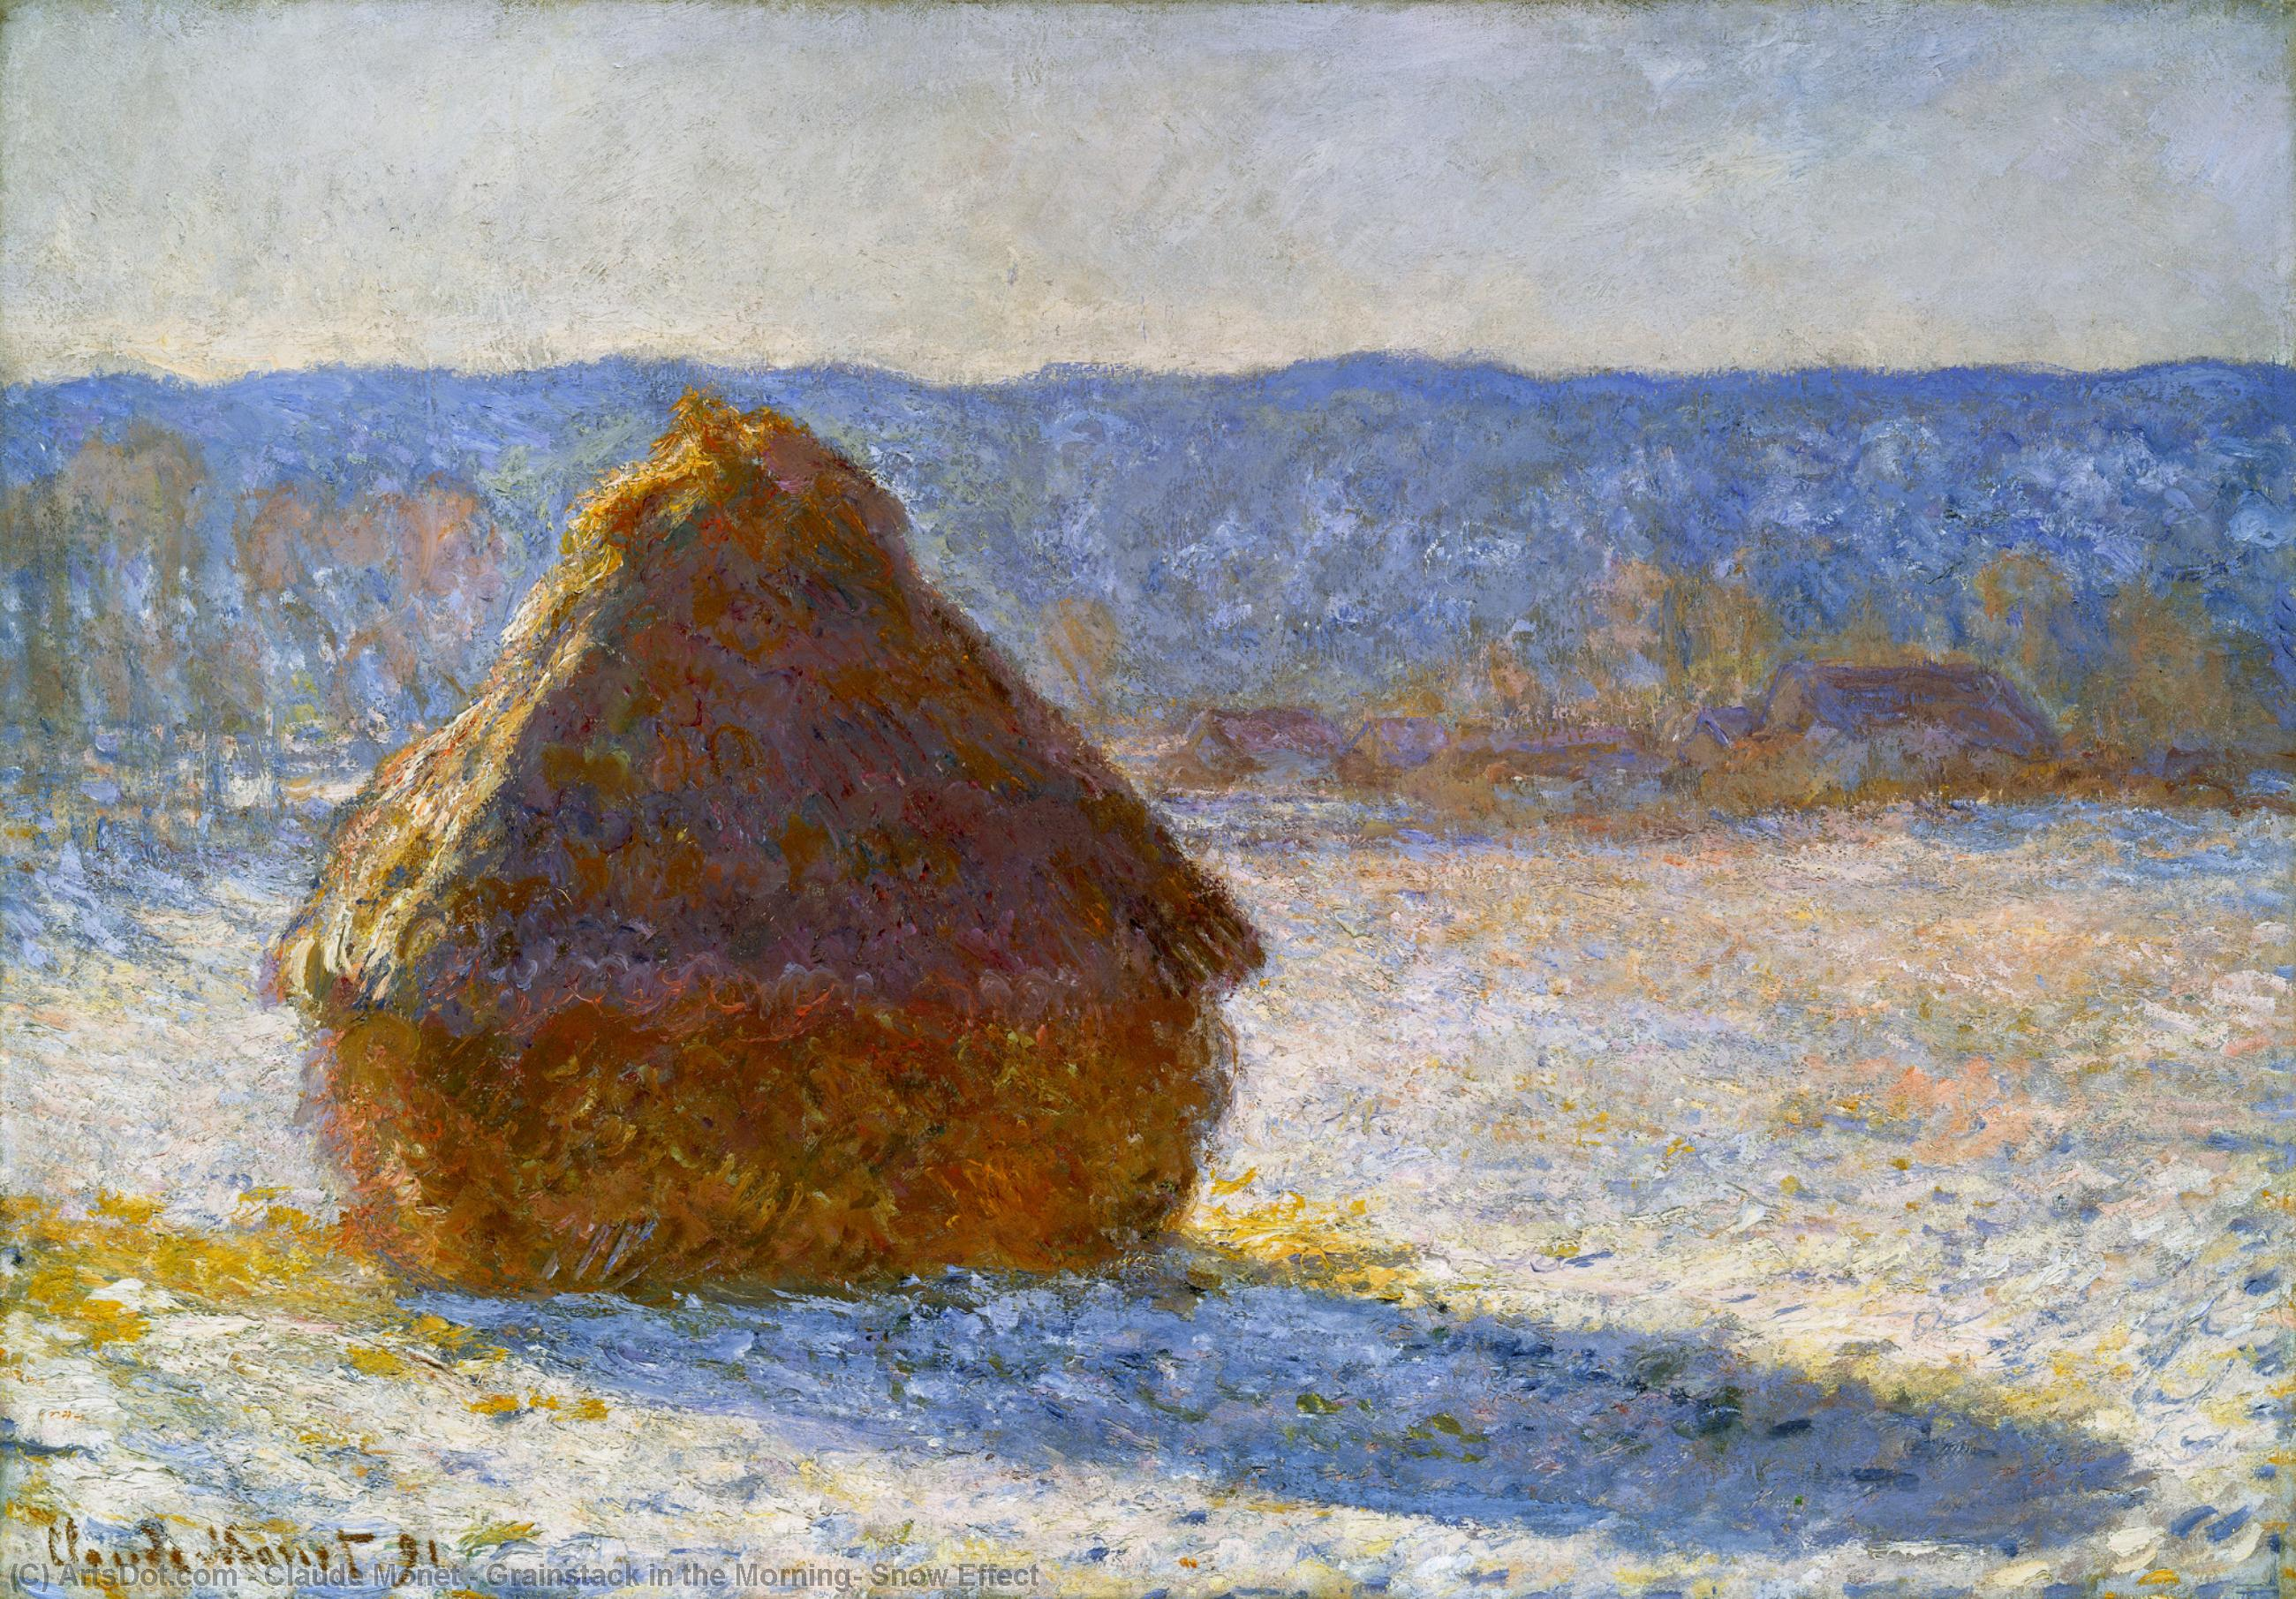 Grainstack in the Morning, Snow Effect, 1890 by Claude Monet (1840-1926, France) | Paintings Reproductions Claude Monet | ArtsDot.com